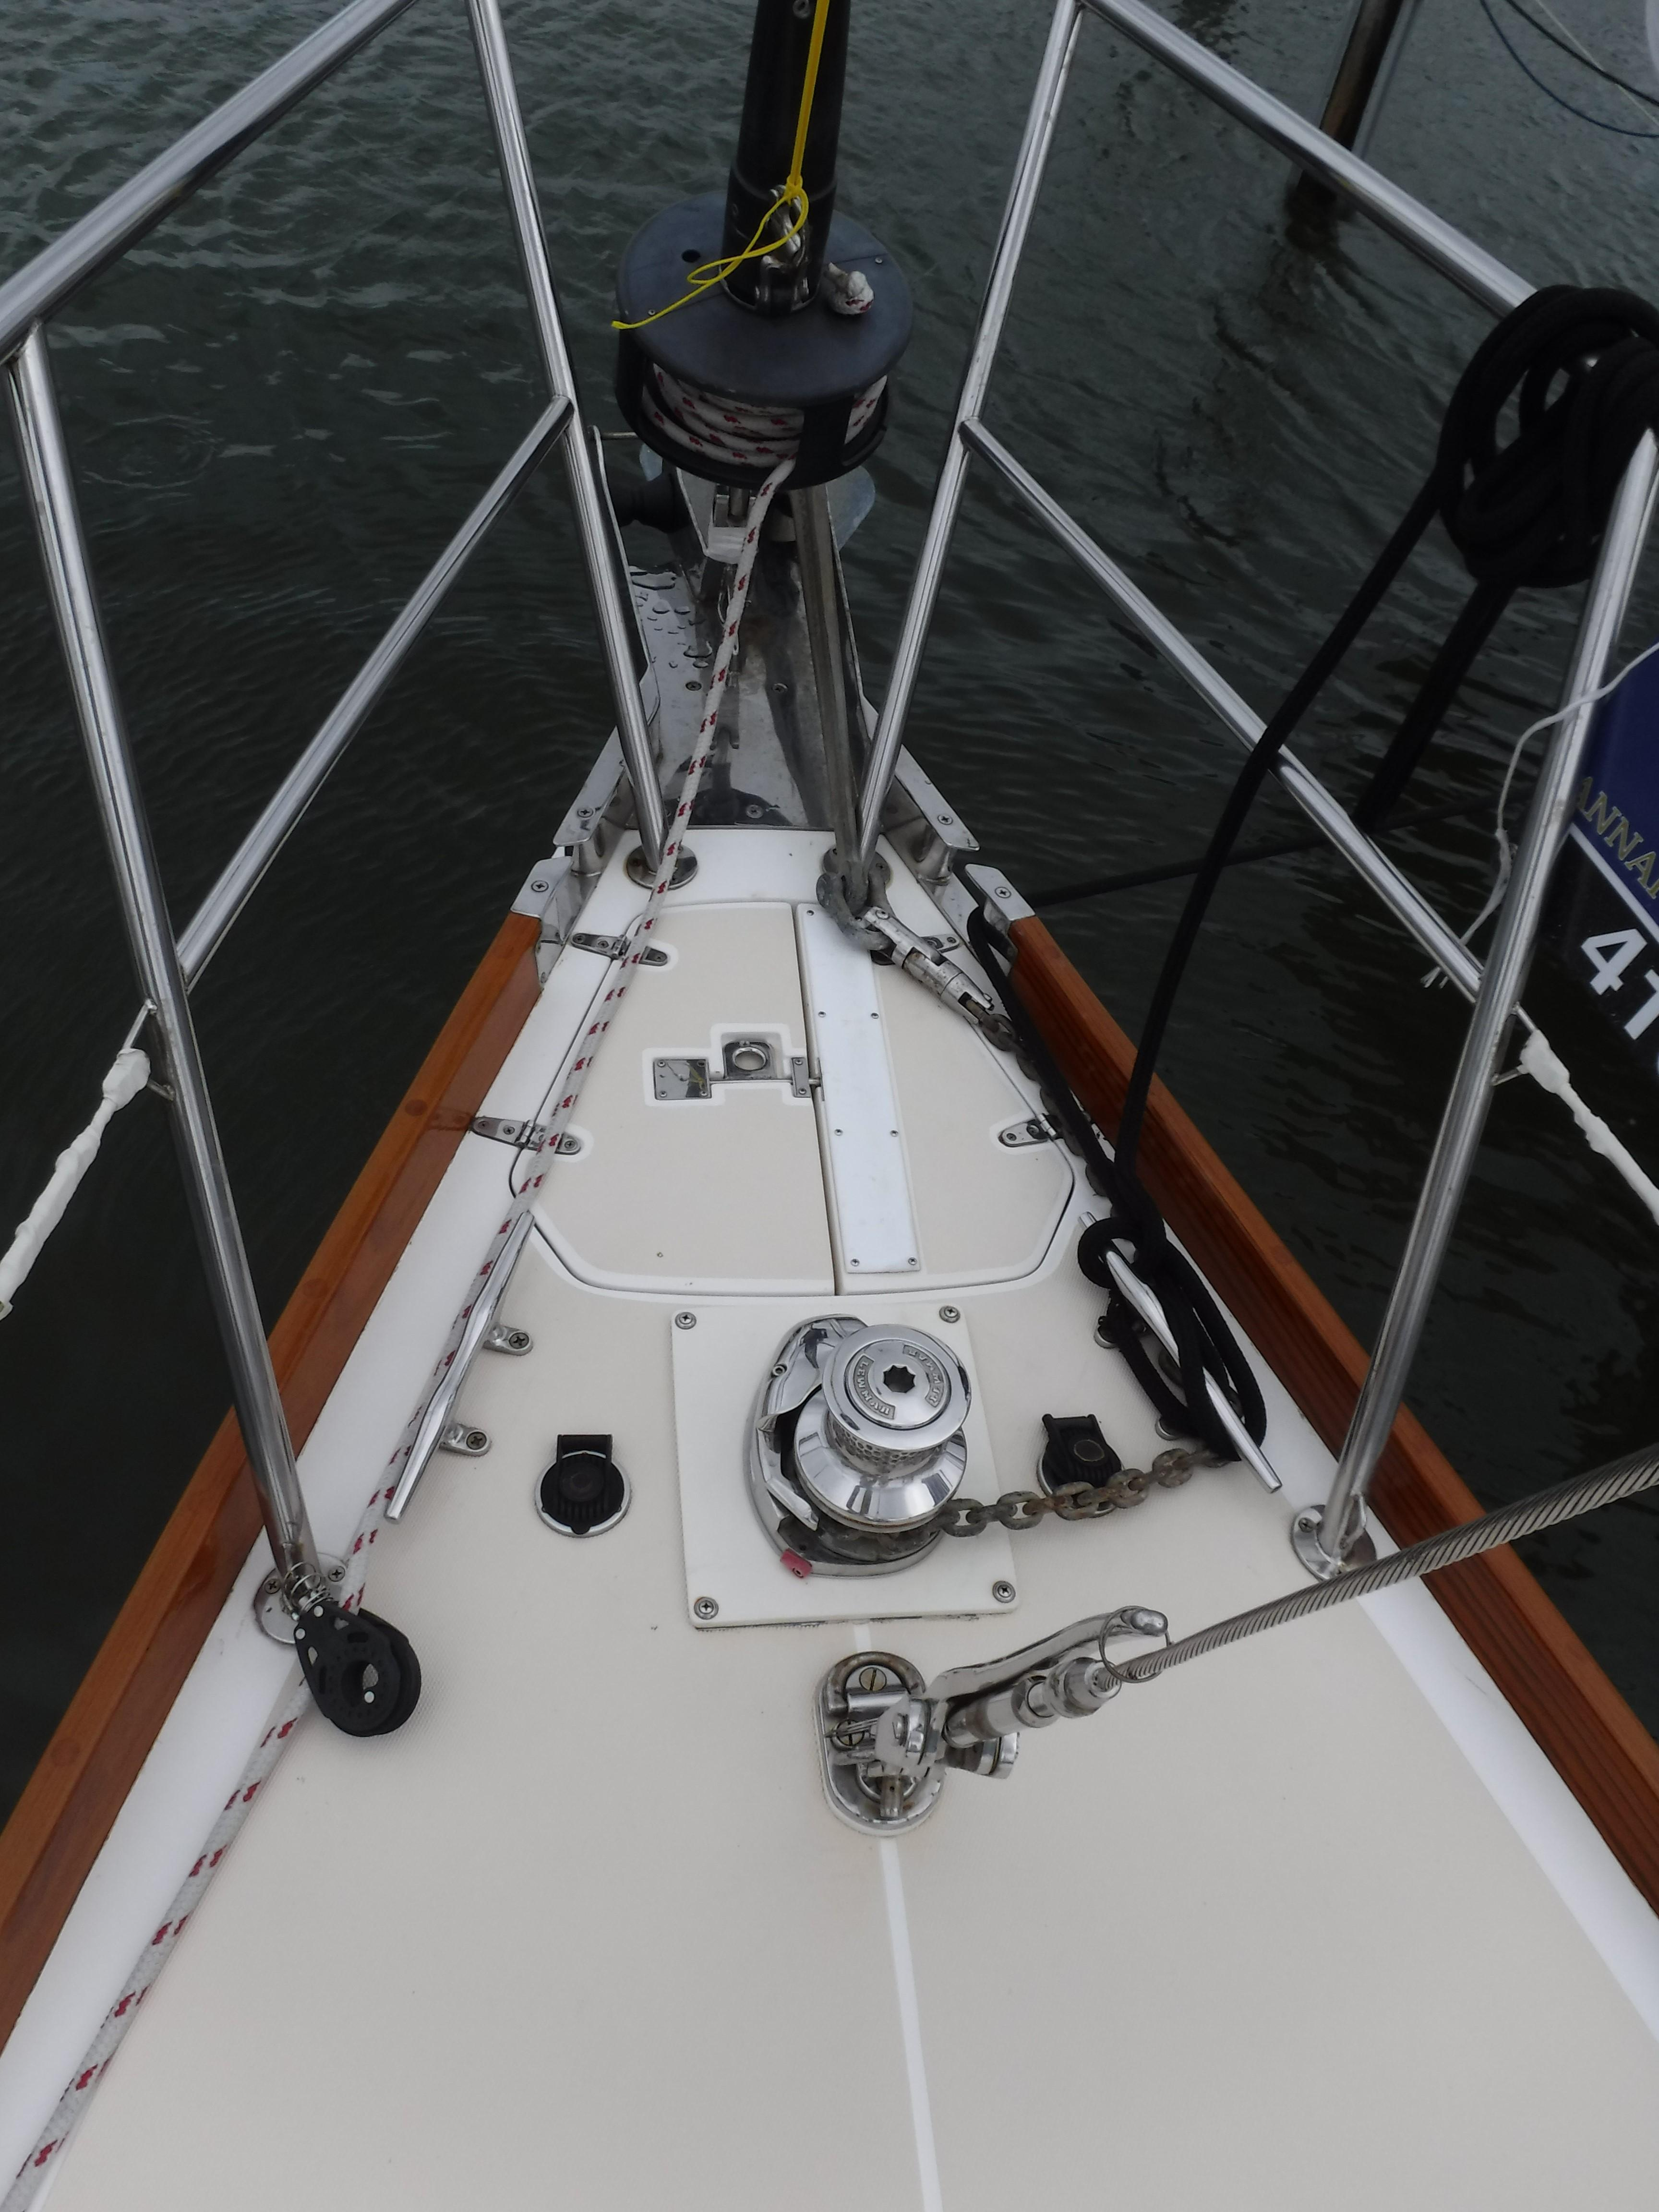 6632418_20180726092517426_1_XLARGE sabre 45 yachts for sale